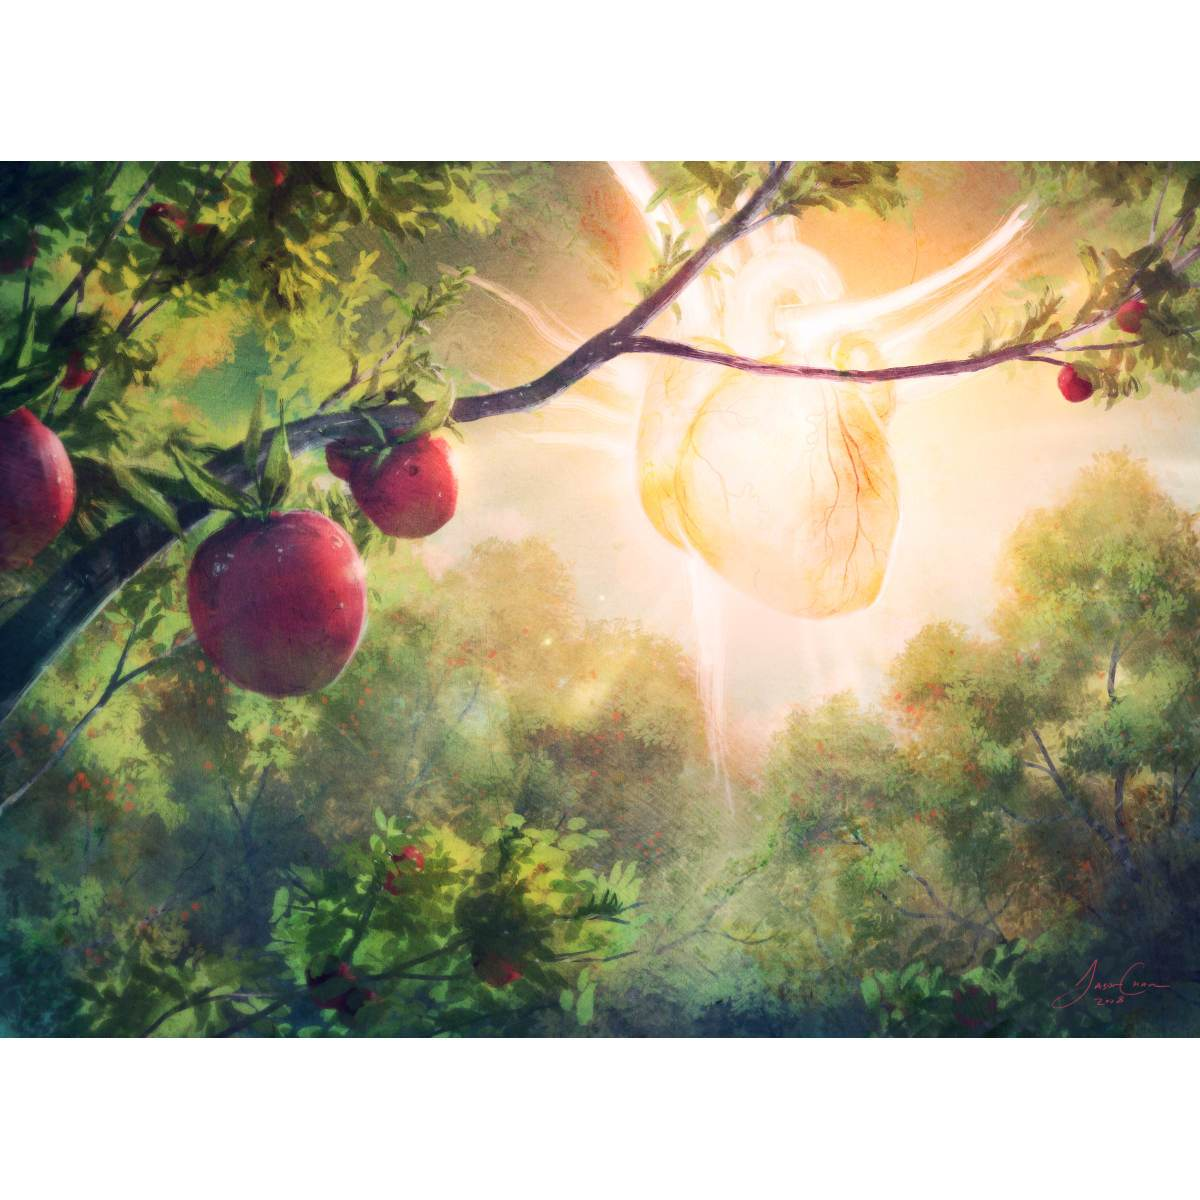 Bountiful Harvest Print - Print - Original Magic Art - Accessories for Magic the Gathering and other card games